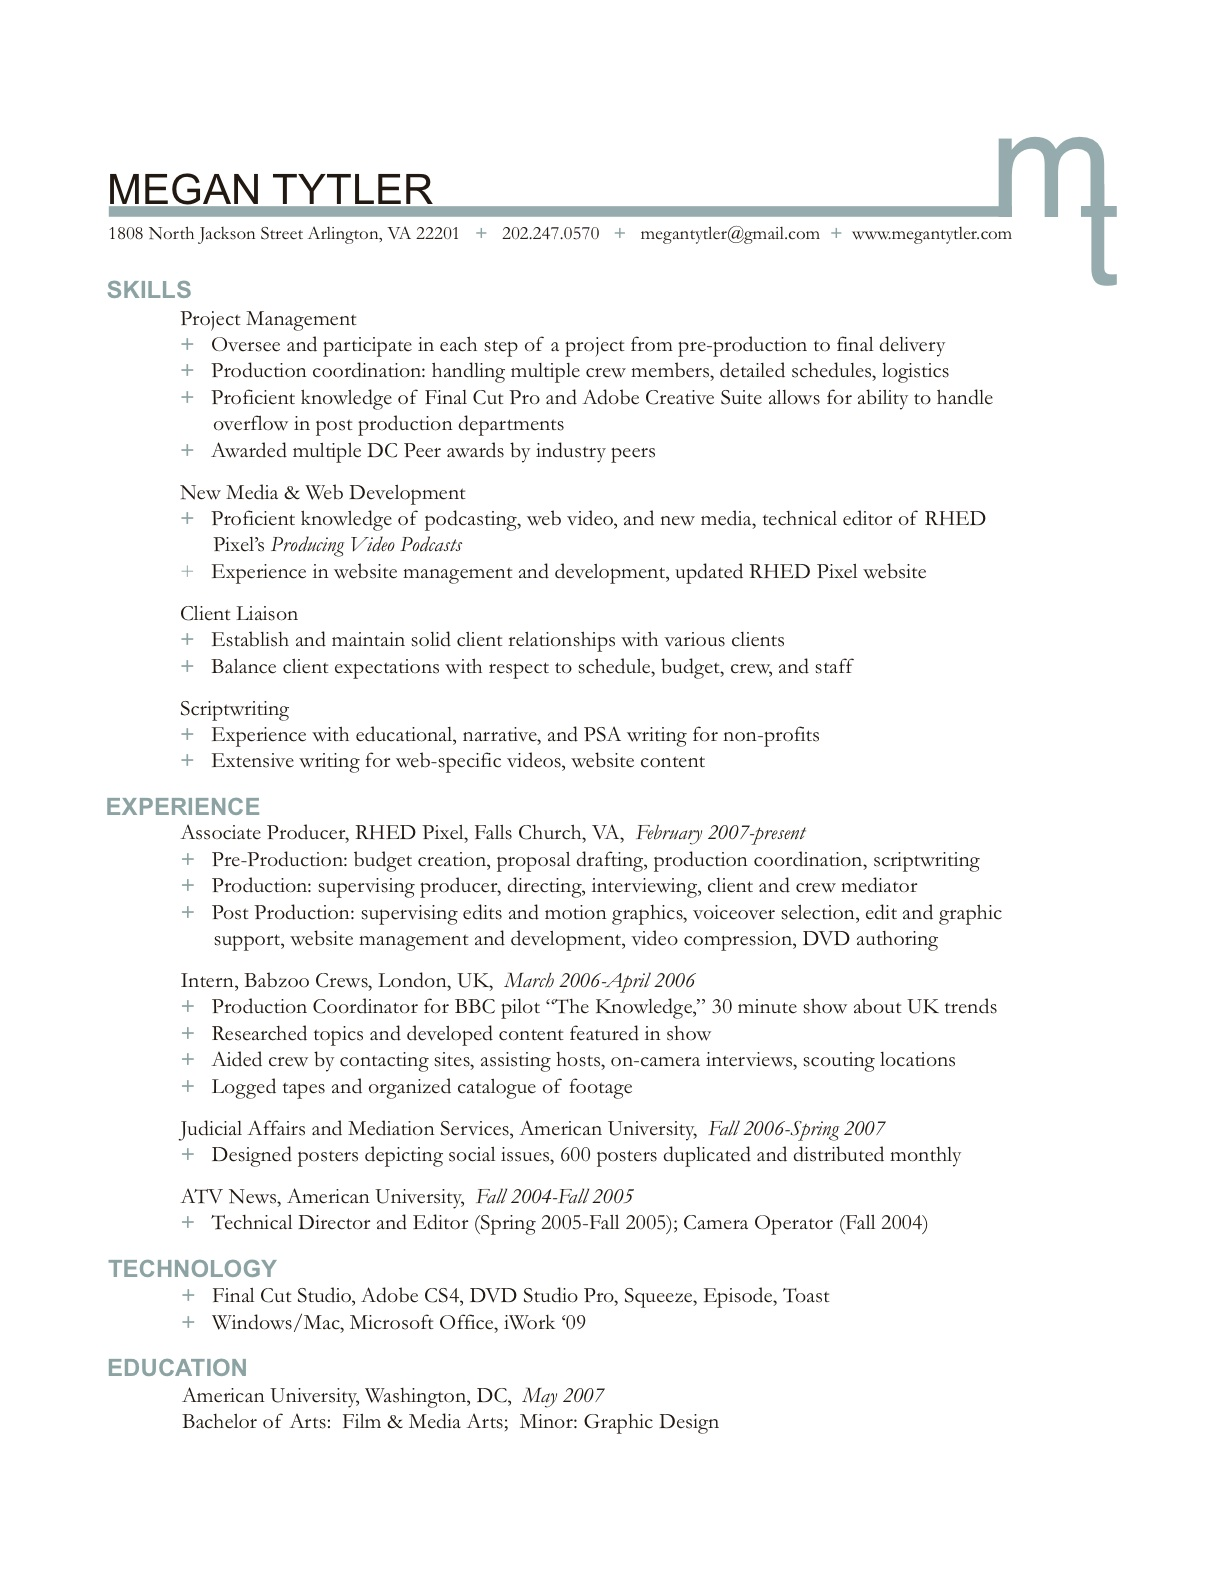 resume content example - Etame.mibawa.co